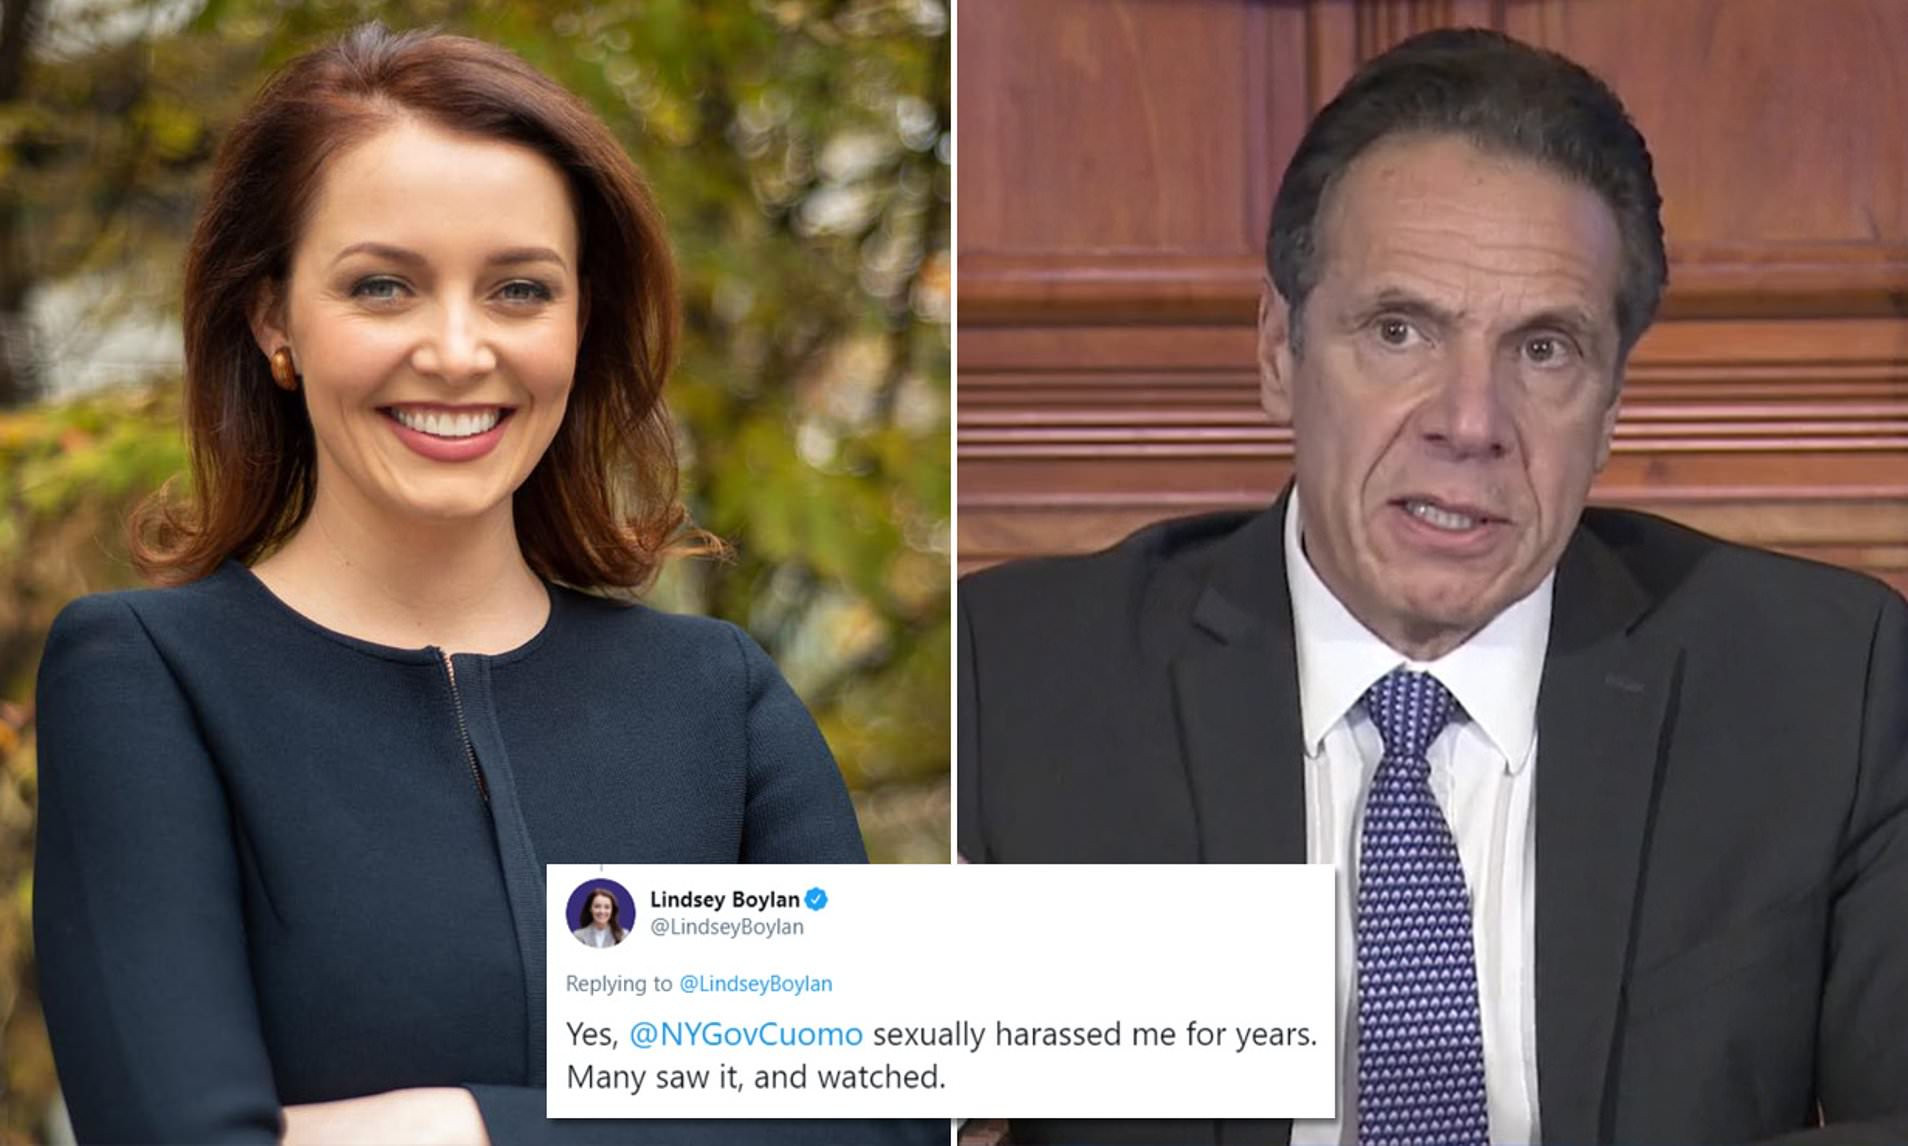 New York Gov. Andrew Cuomo accused of sexual harassment by ex-aide